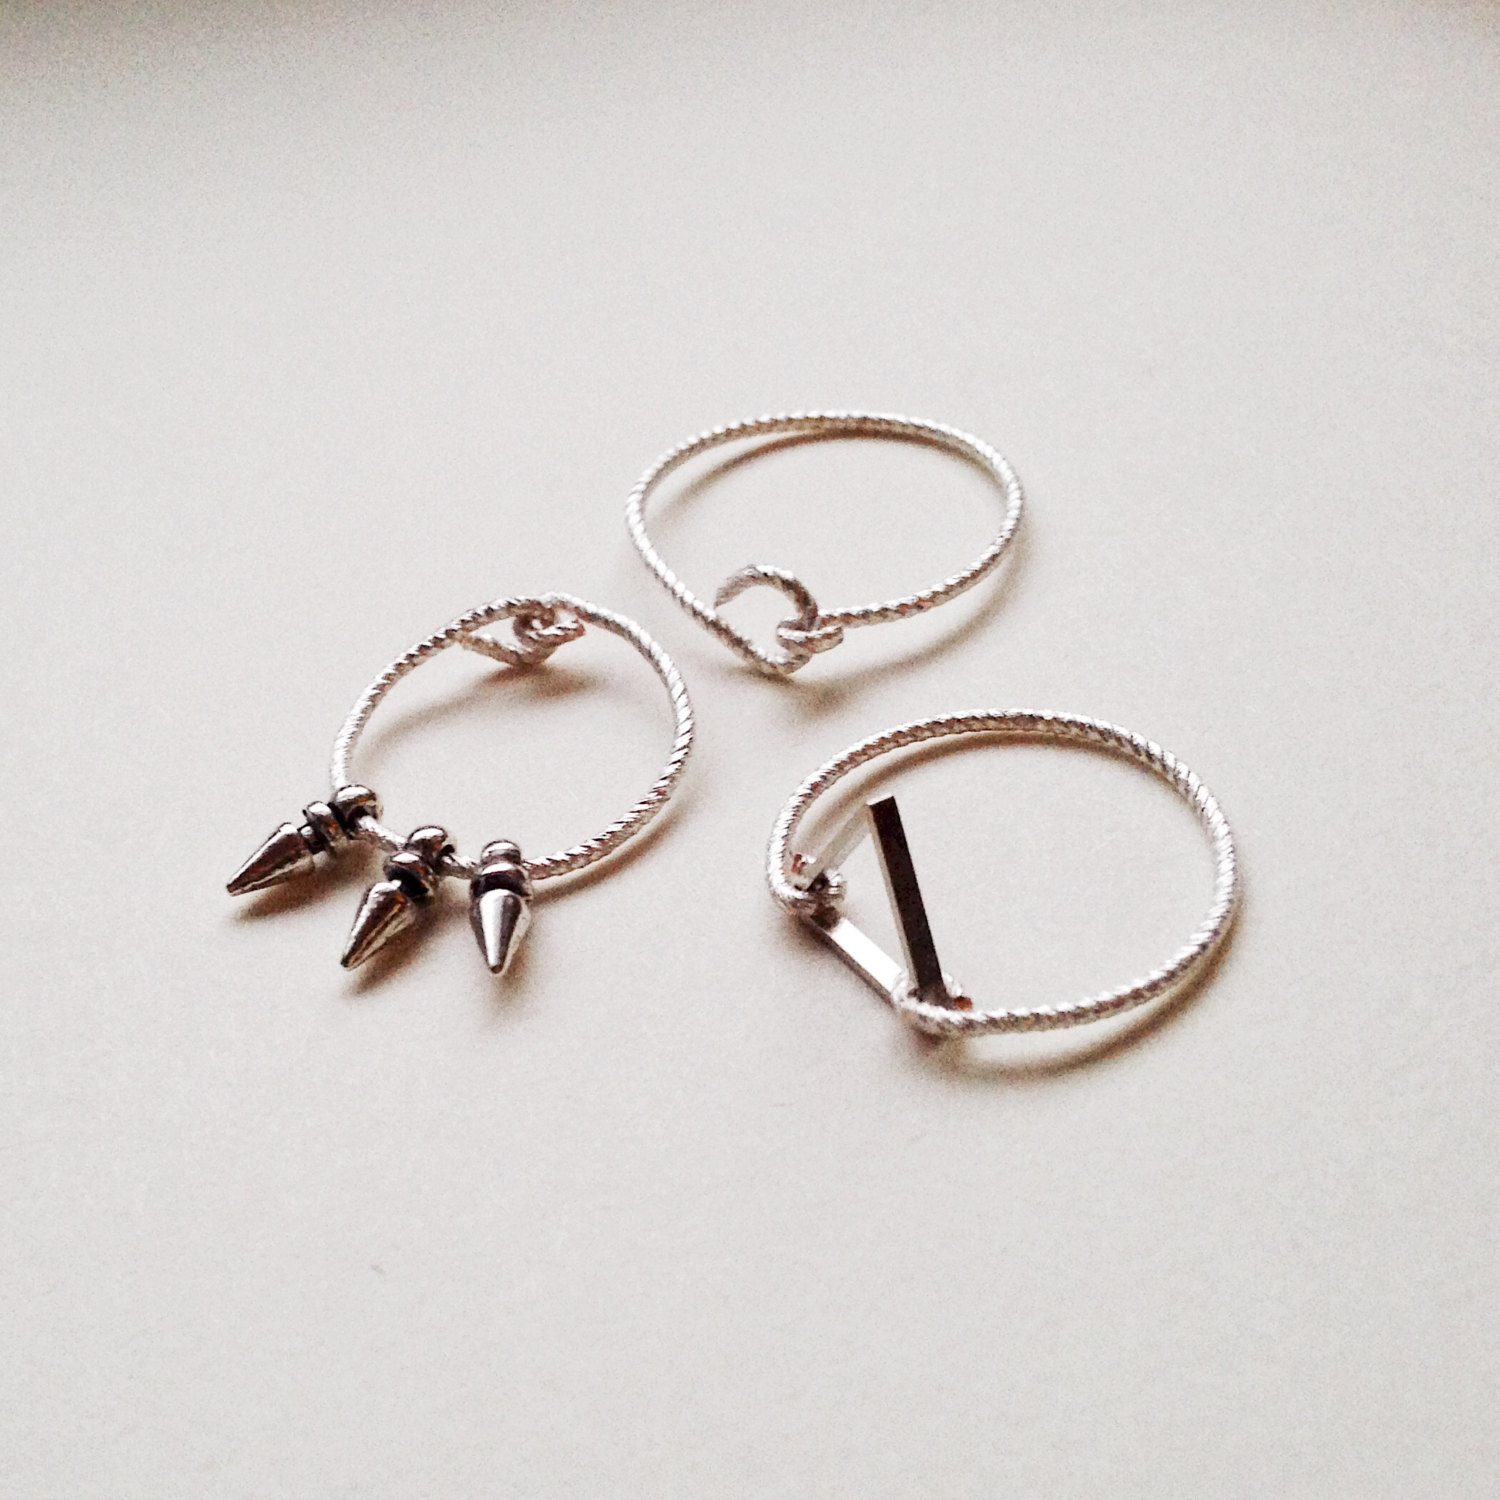 Minimalist Ring -Triangle Ring, Wire Ring, Tribal Jewelry, Edgy Ring, Spike Ring, Knuckle Ring, Geometric Ring